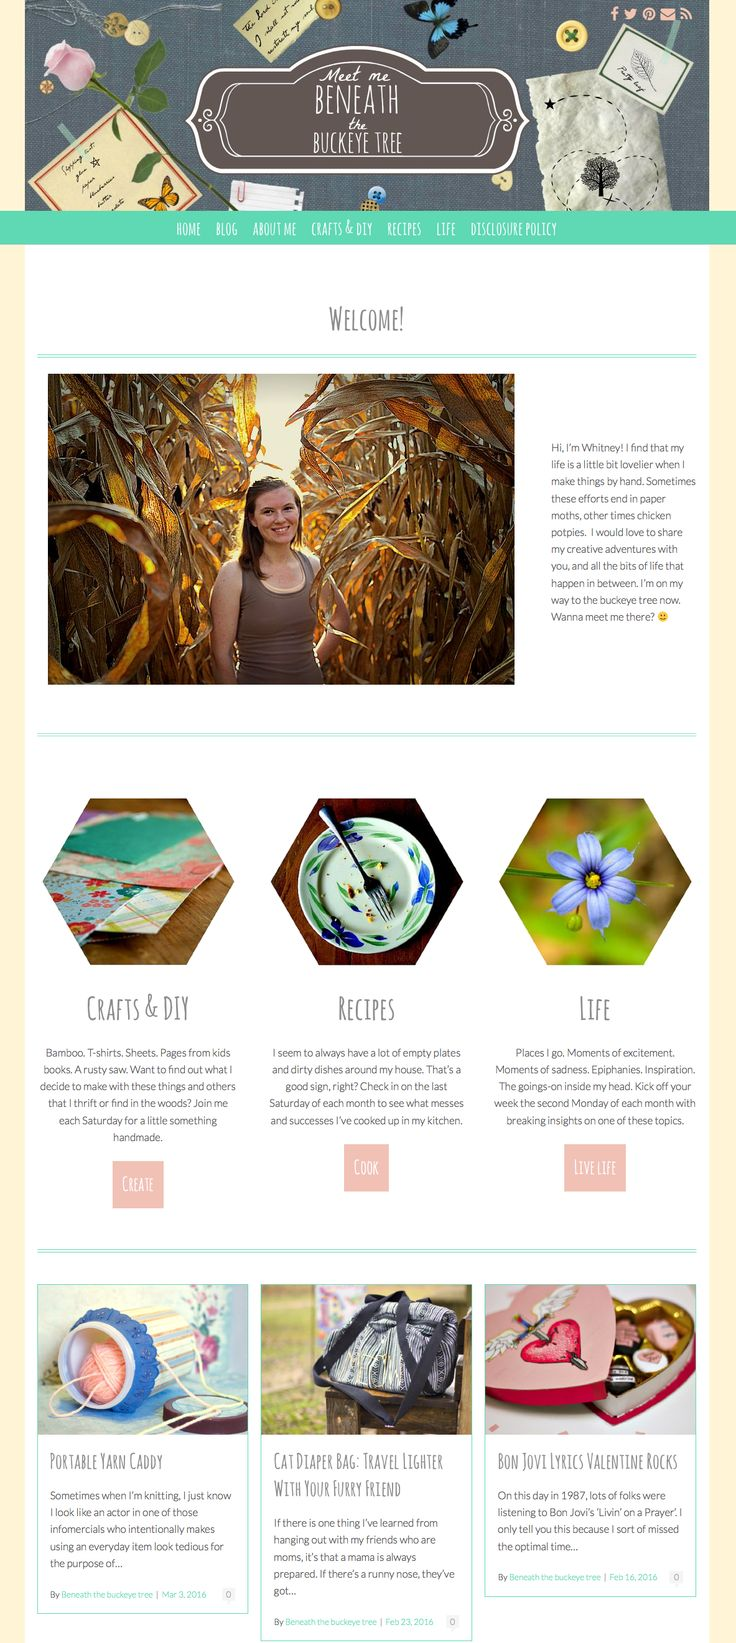 LOVE the use of color and creative images in this blog design running off an Angie Makes Theme. Just lovely!